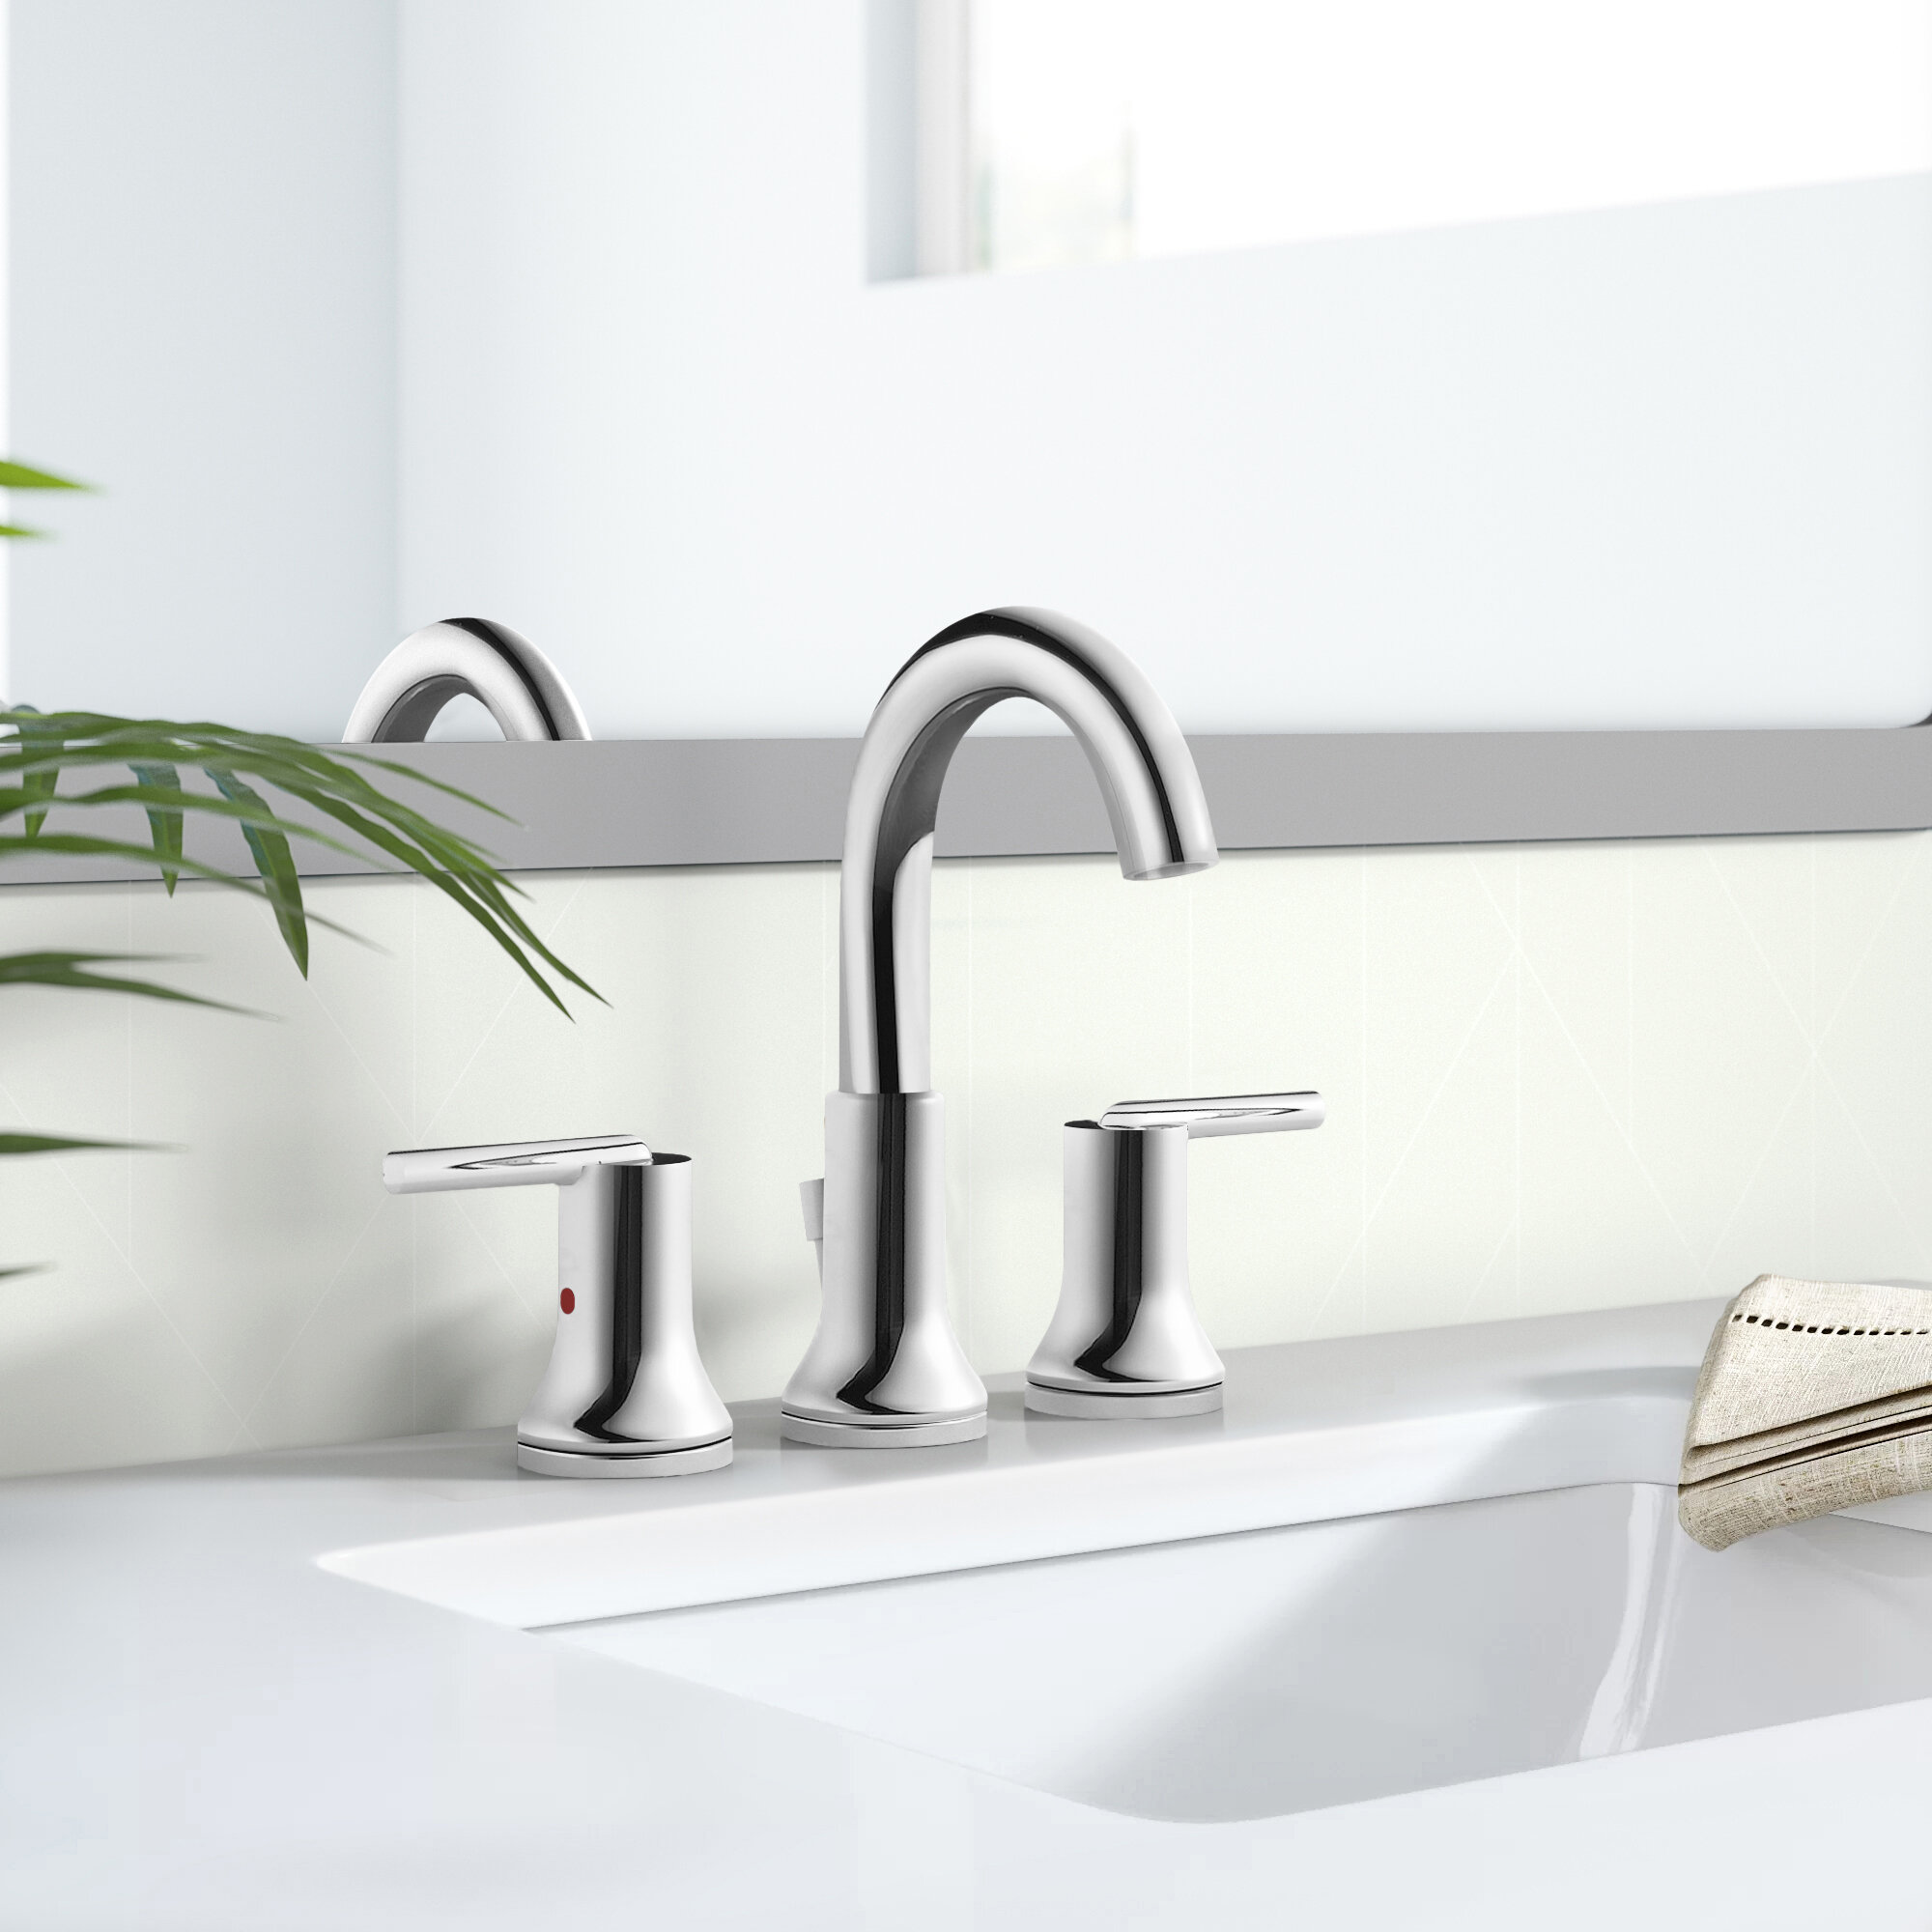 Trinsic Widespread Bathroom Faucet With Drain Assembly And Diamond Seal Technology Reviews Allmodern